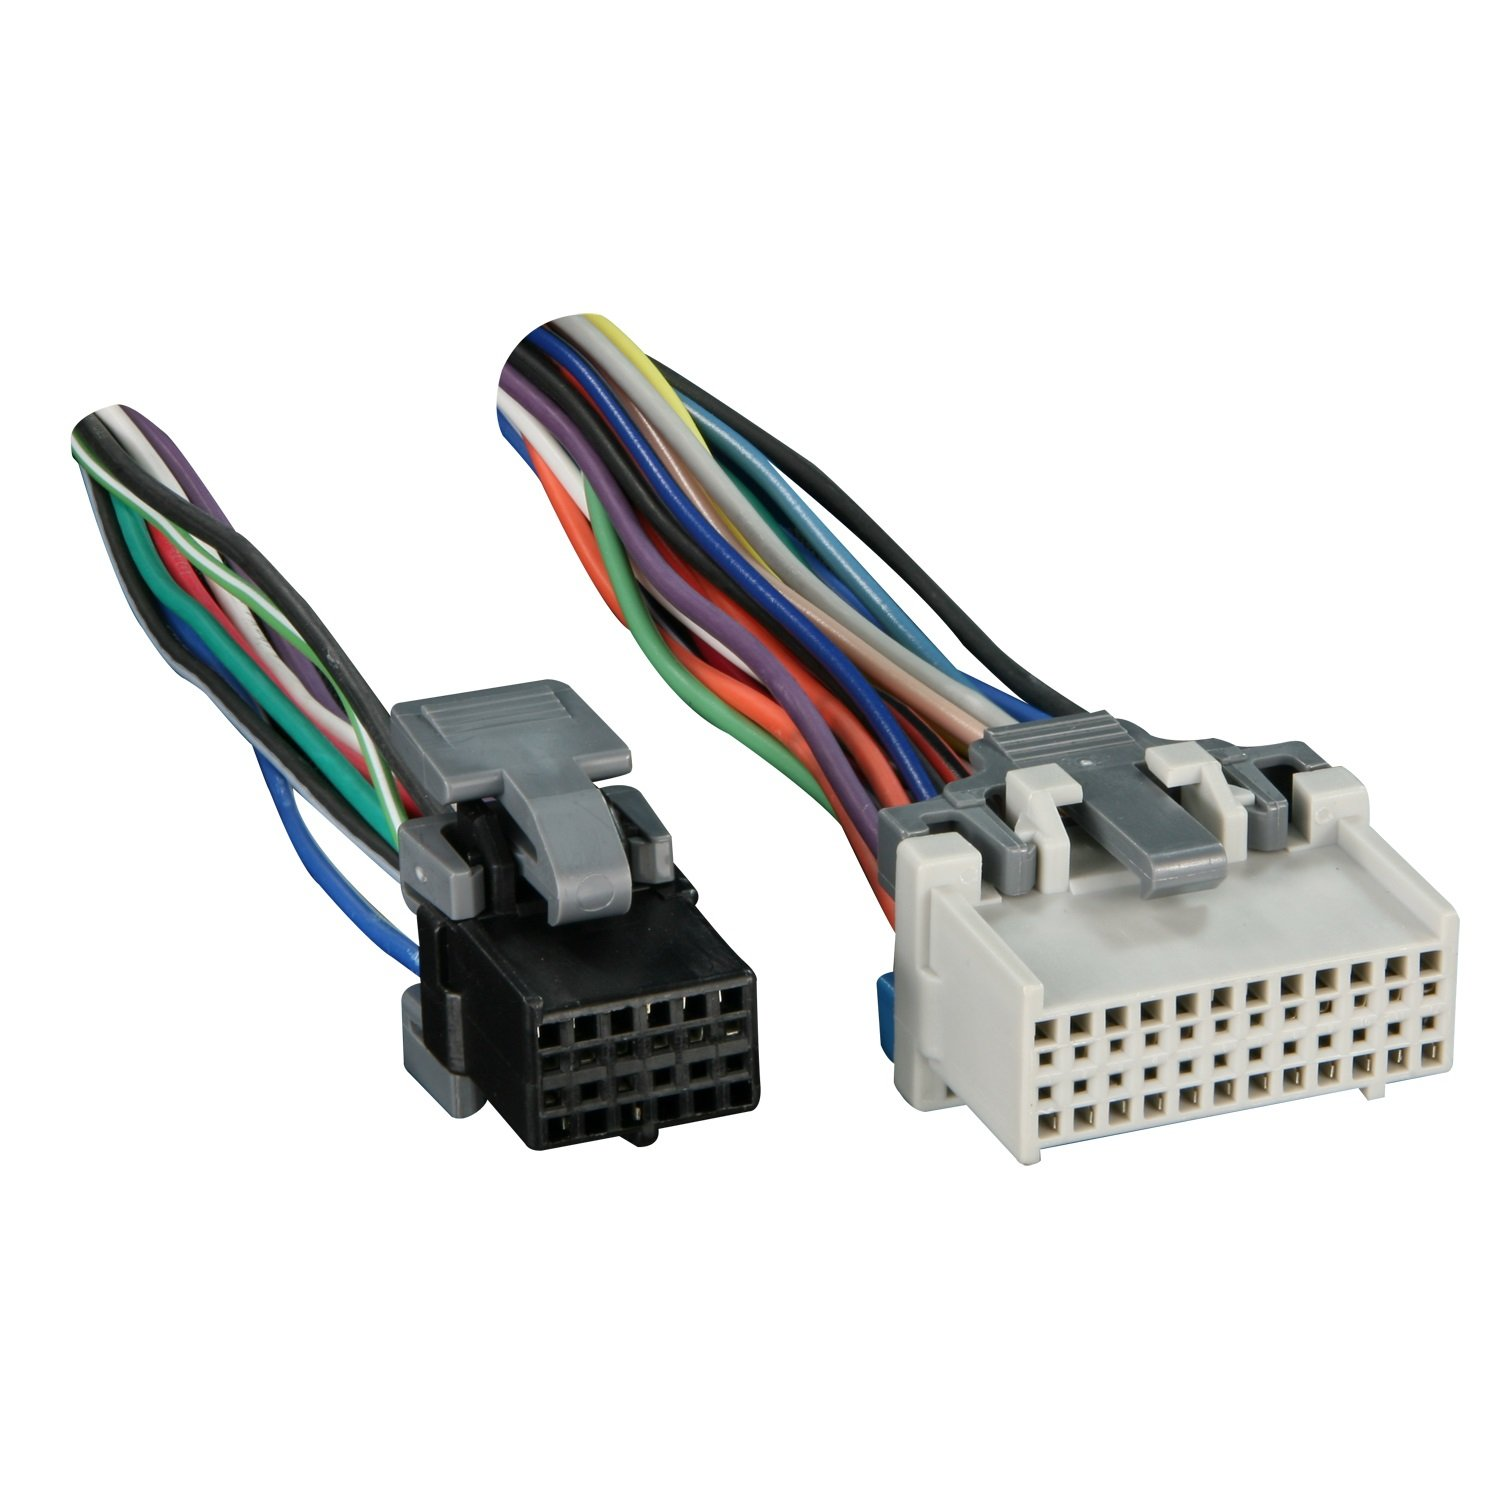 711log4bdML._SL1500_ amazon com metra turbowires 71 2003 1 wiring harness car electronics mazda wiring harness connectors at webbmarketing.co